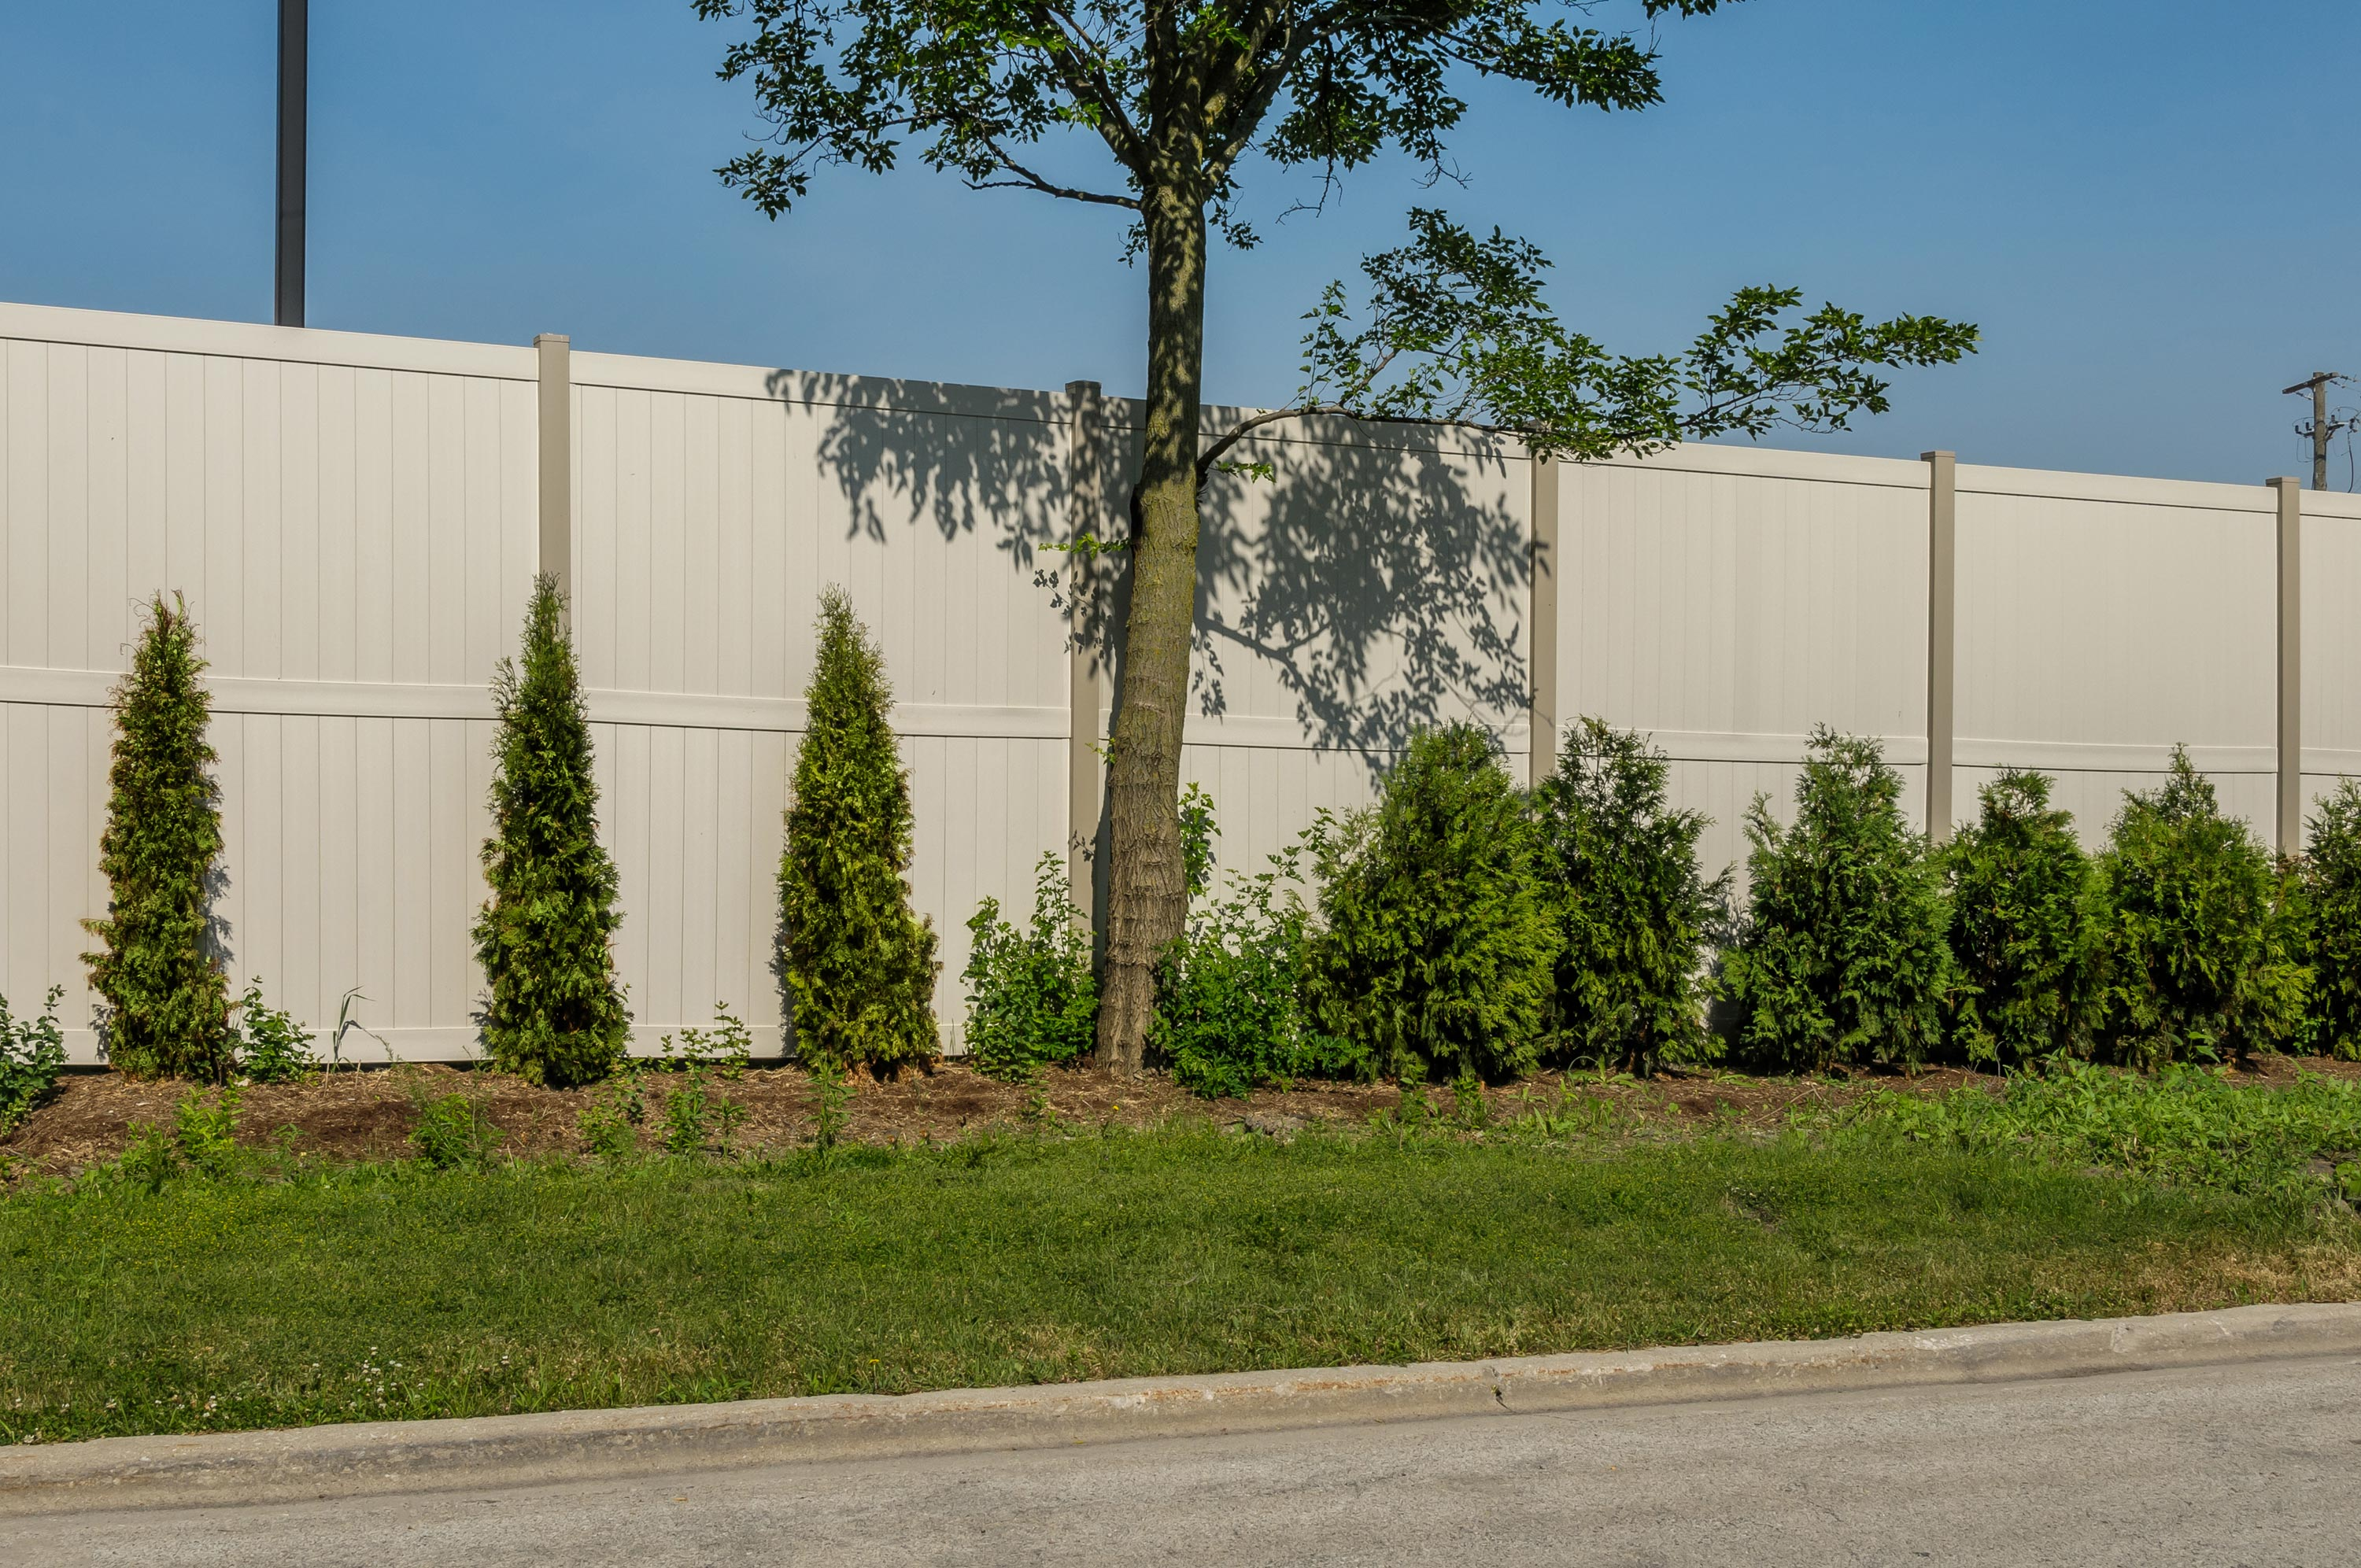 10' Rainer vinyl fence photo fence-13 installed around warehouse in River Grove, Illinois